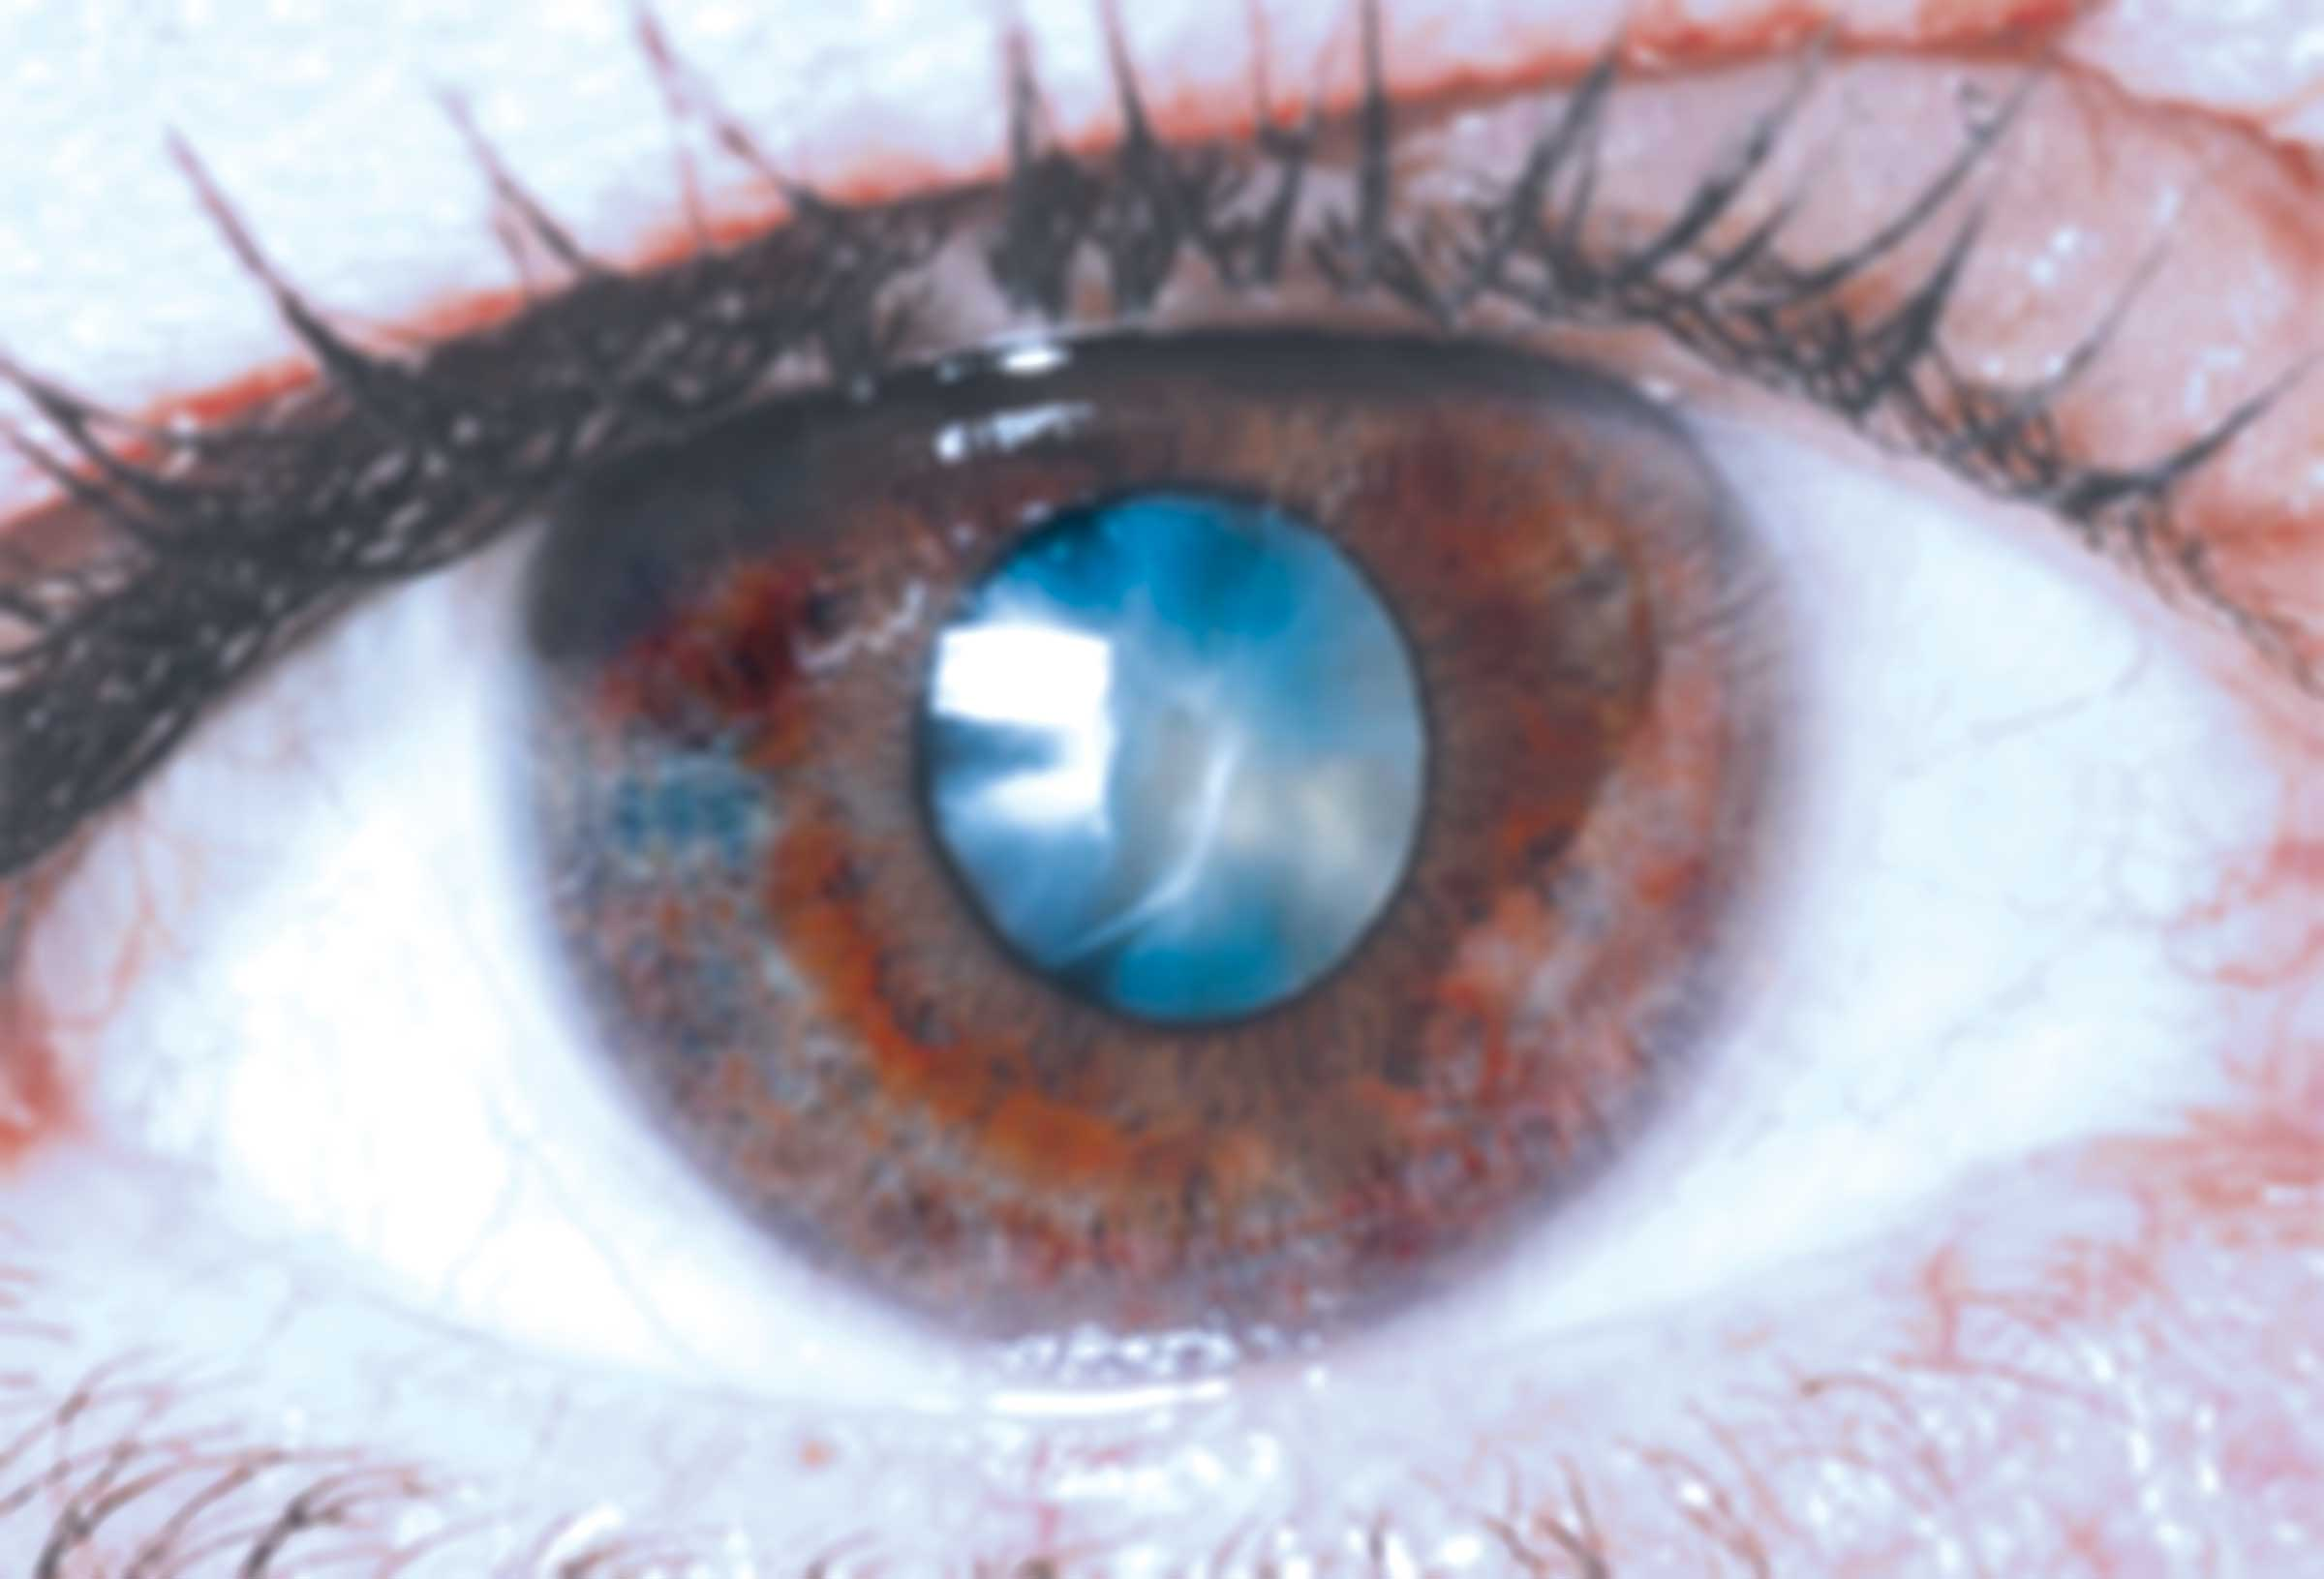 Perfecting Cataract Surgery At Asian Eye Institute   Voice Of The South News